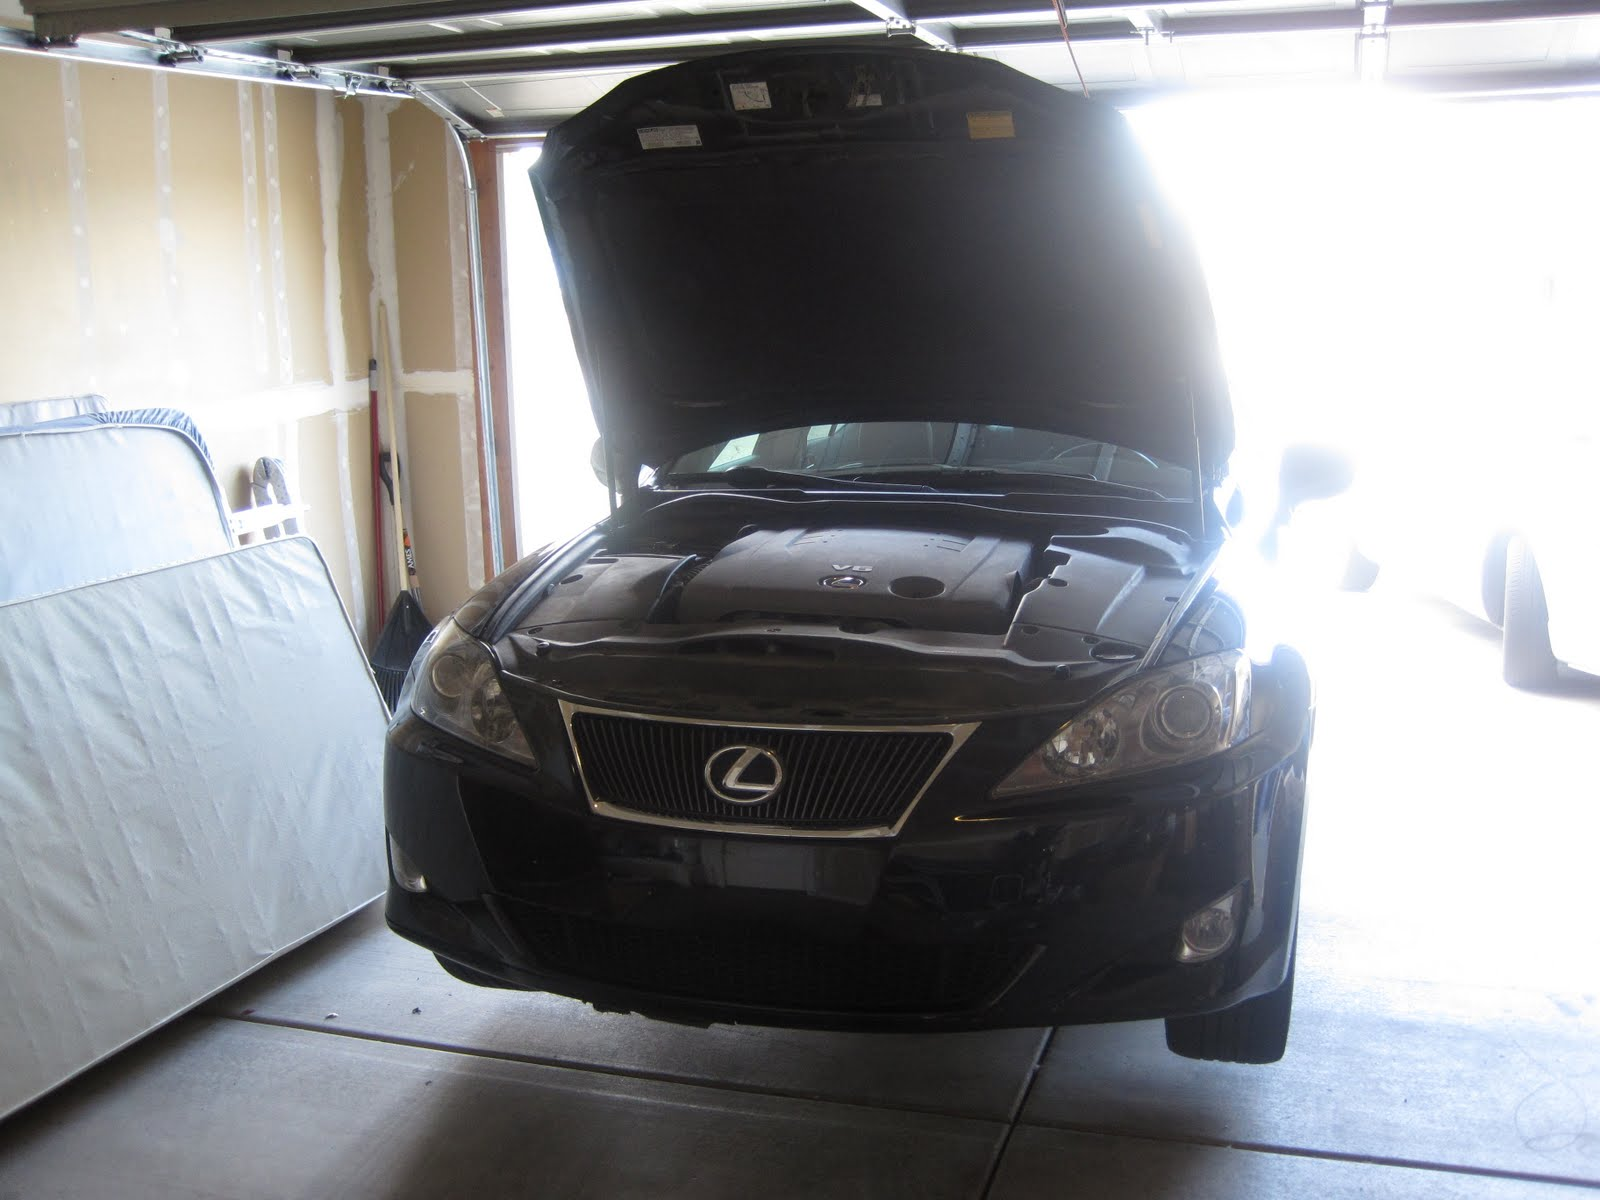 Andy Andy Blog Lexus IS 250 350 How to Perform an Oil Change